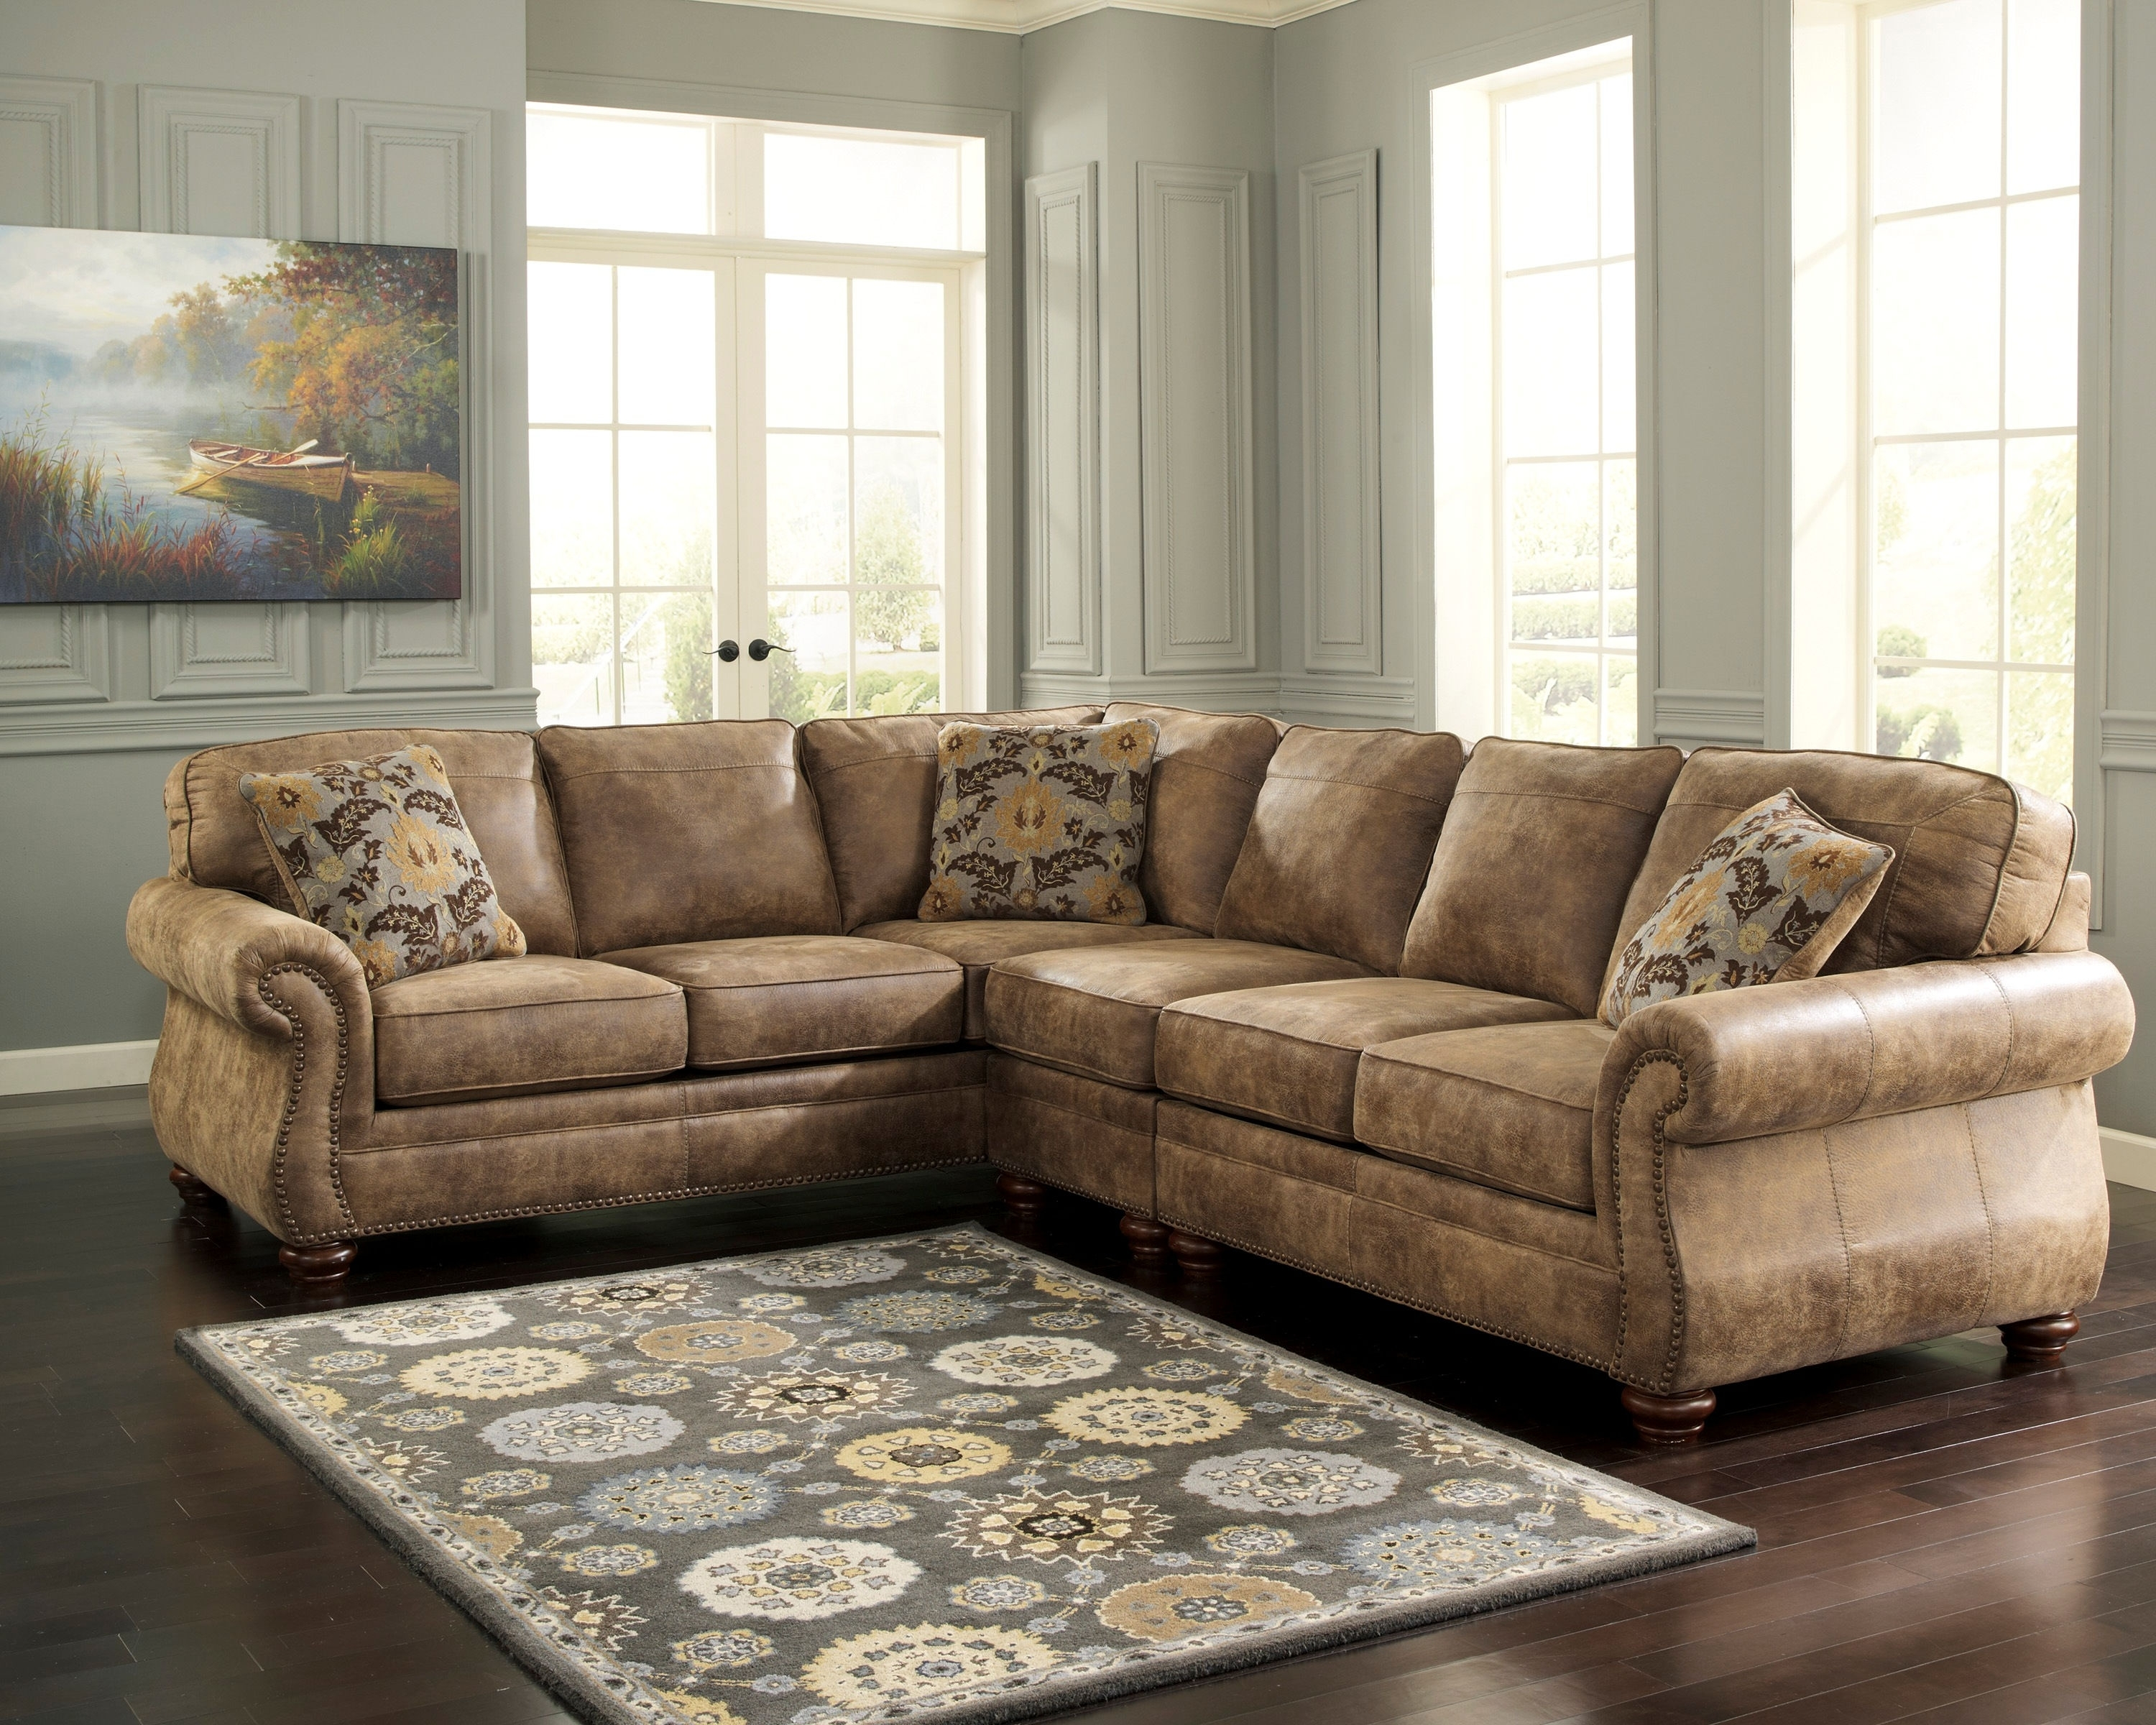 Laf Sofa Raf Loveseat | Baci Living Room With Regard To Turdur 3 Piece Sectionals With Laf Loveseat (View 13 of 25)